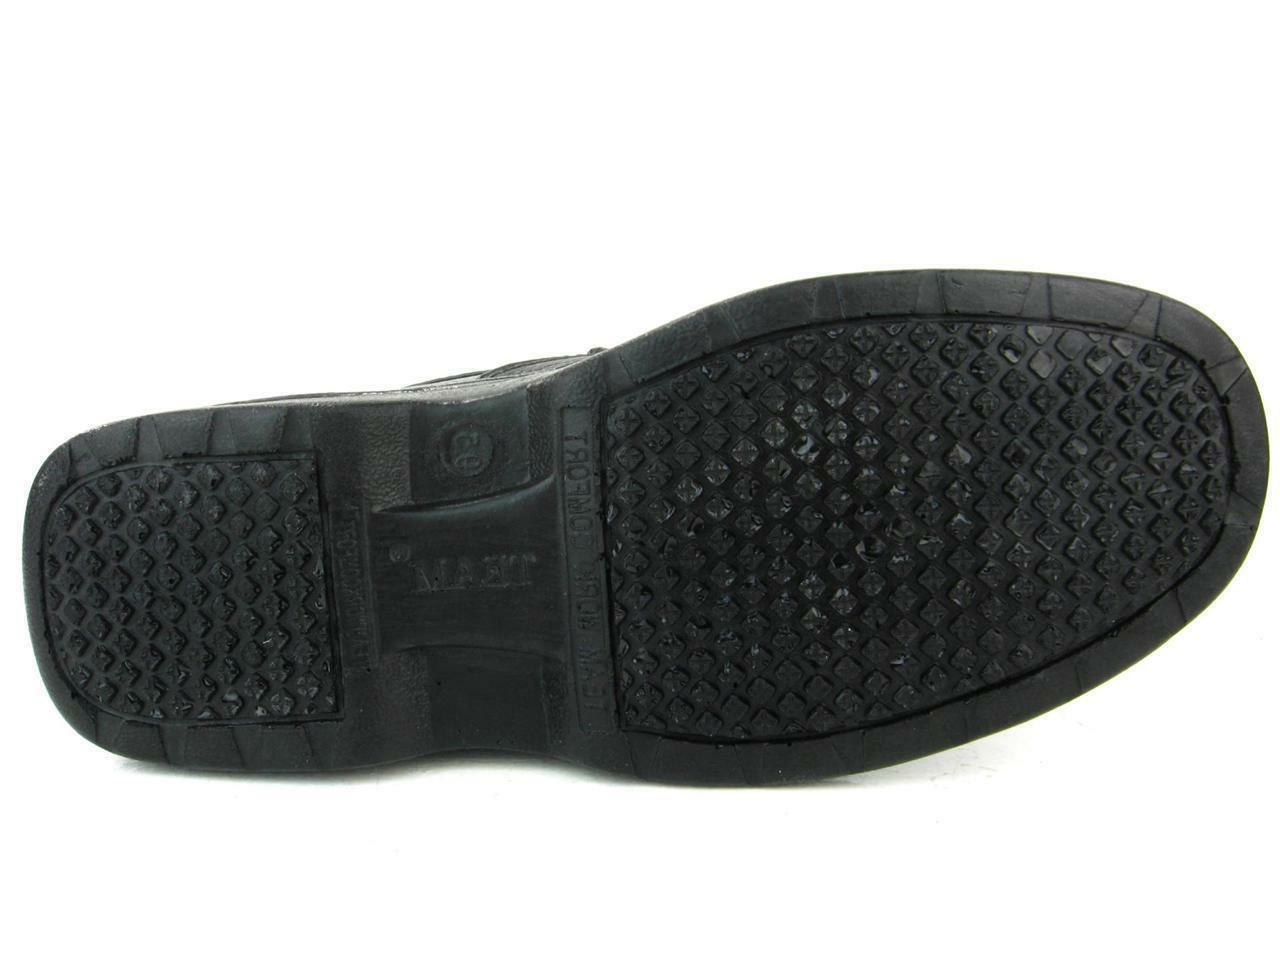 Men's Restaurant Kitchen Work Slip-On Non-Slip